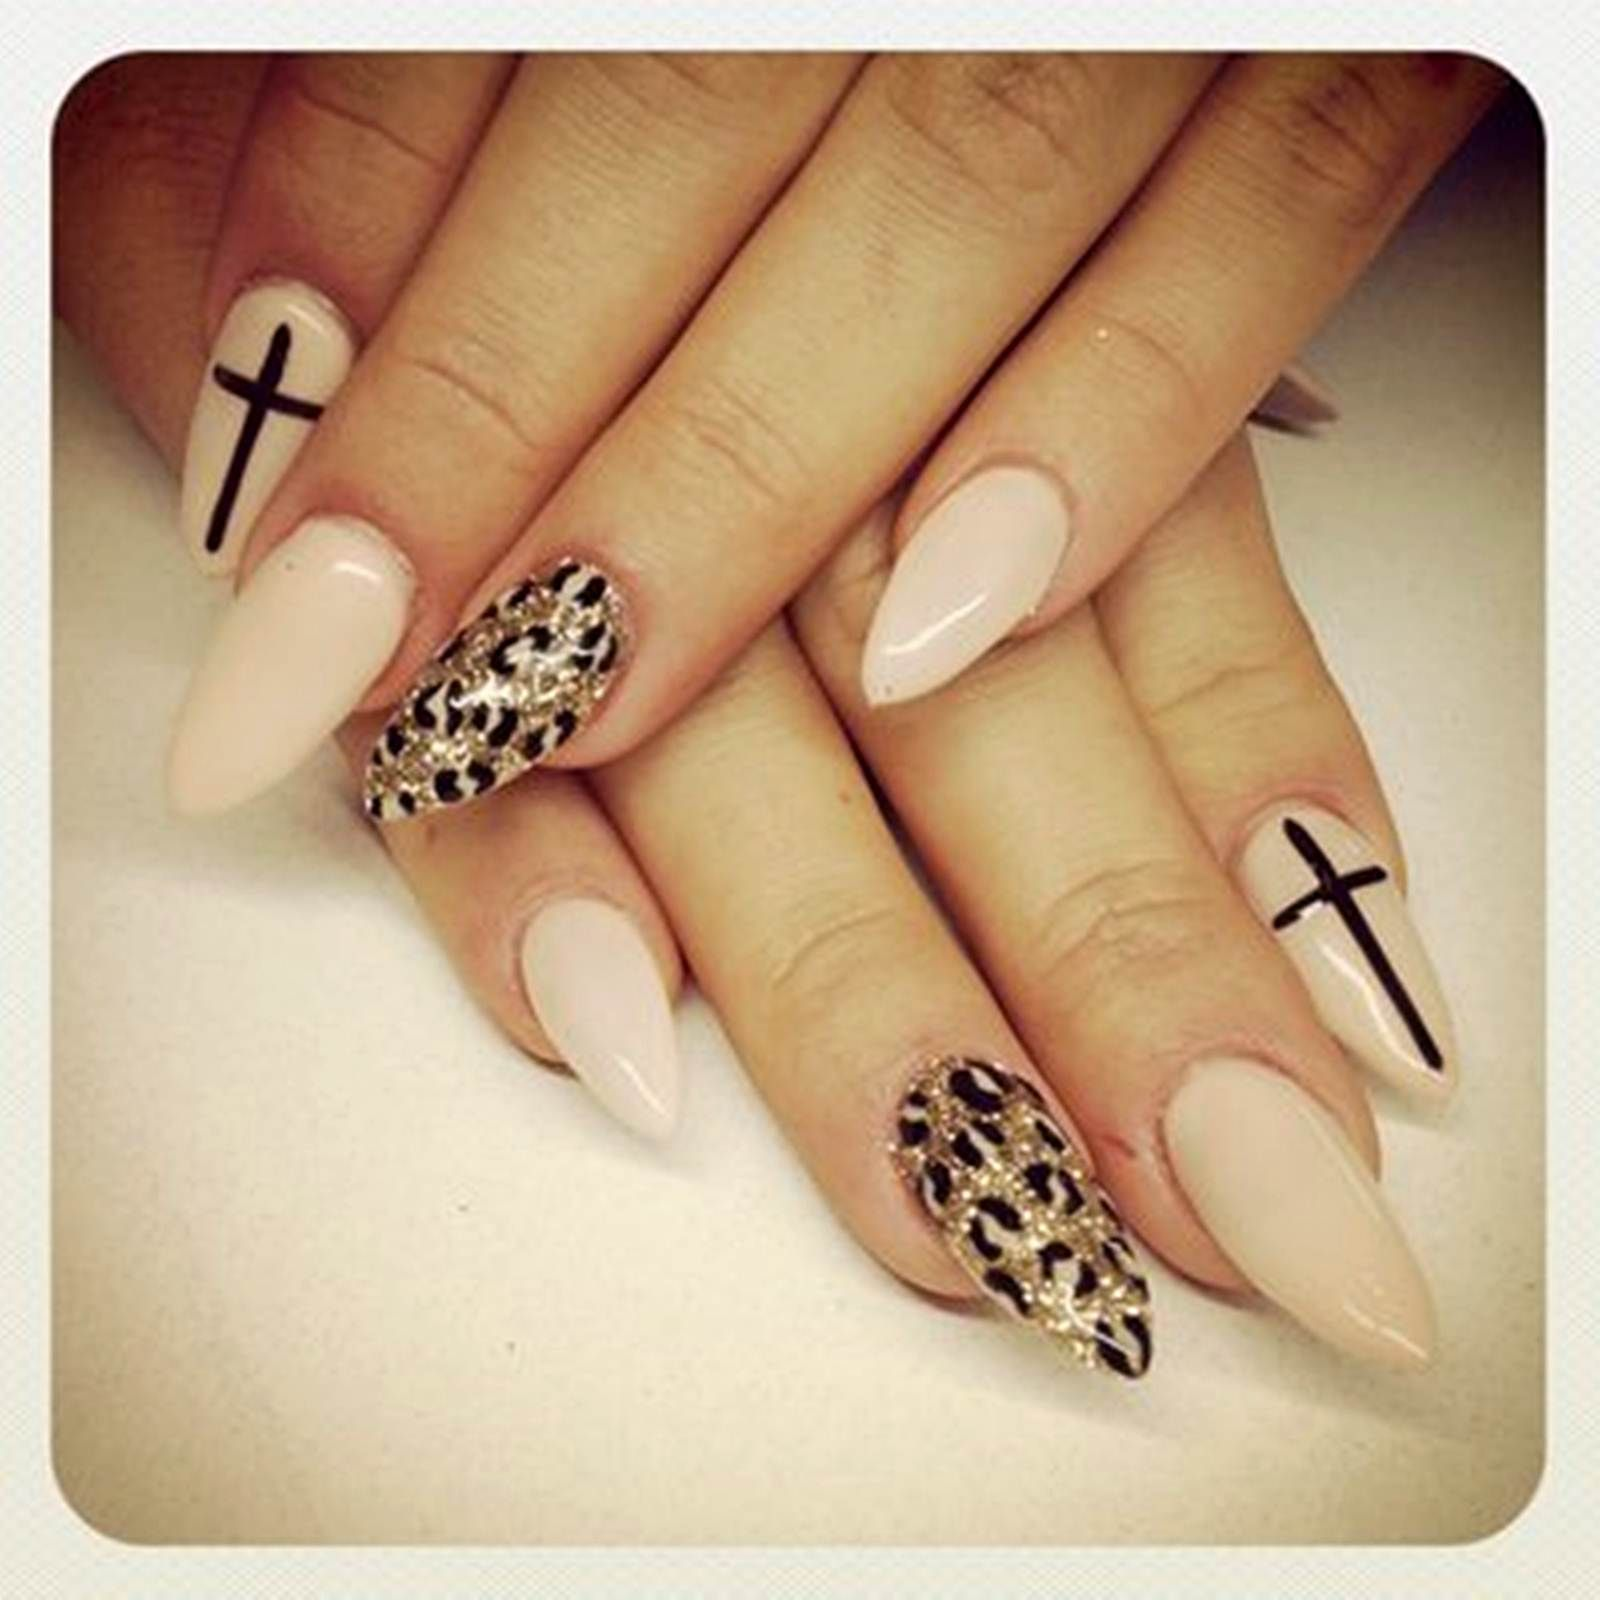 Nail Art: Acrylic Nails At Home For Glamorous Tred And Change The ...